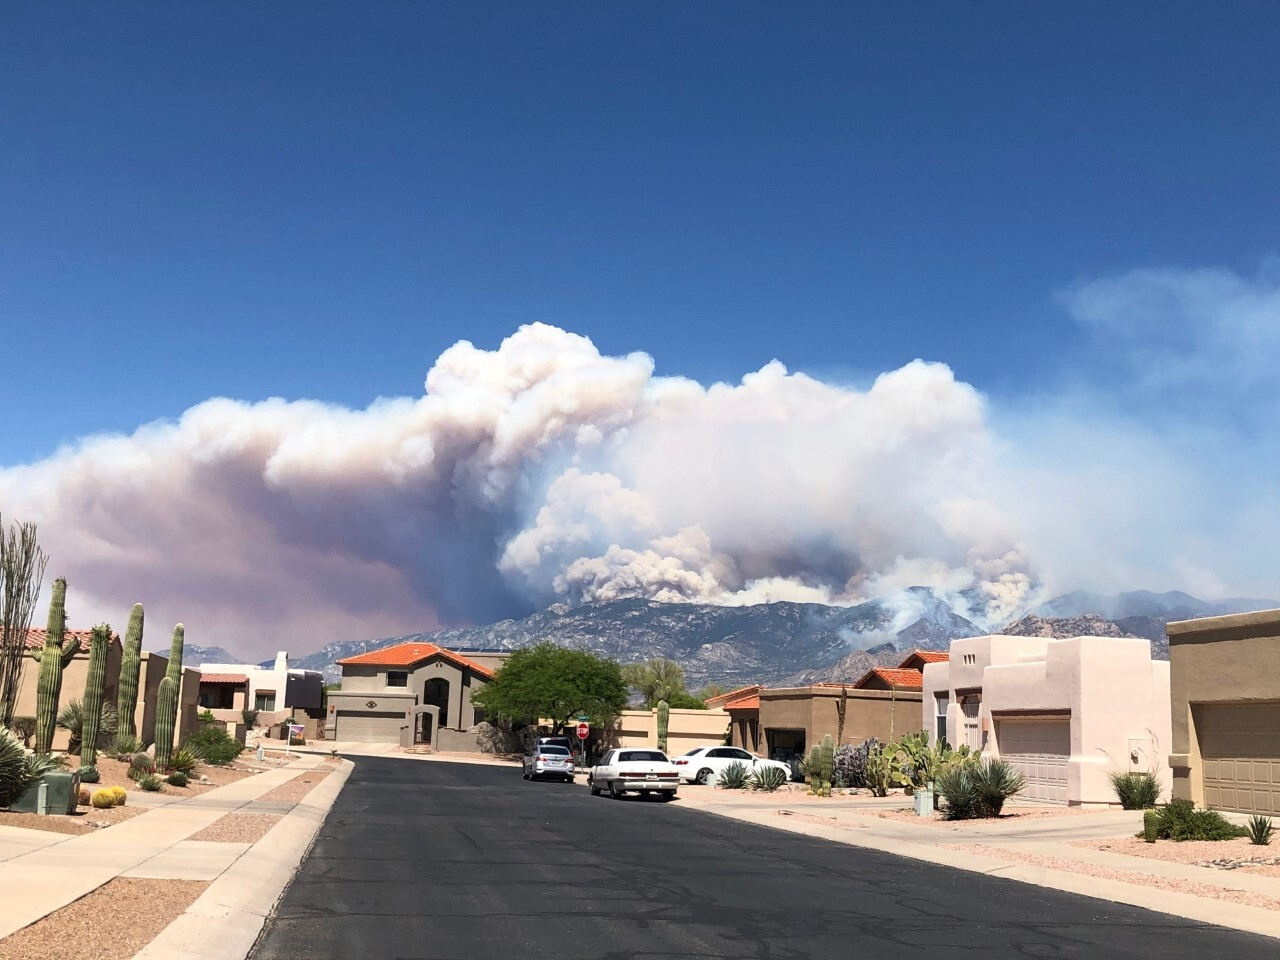 The Bighorn Fire as soon from Monterra Hills